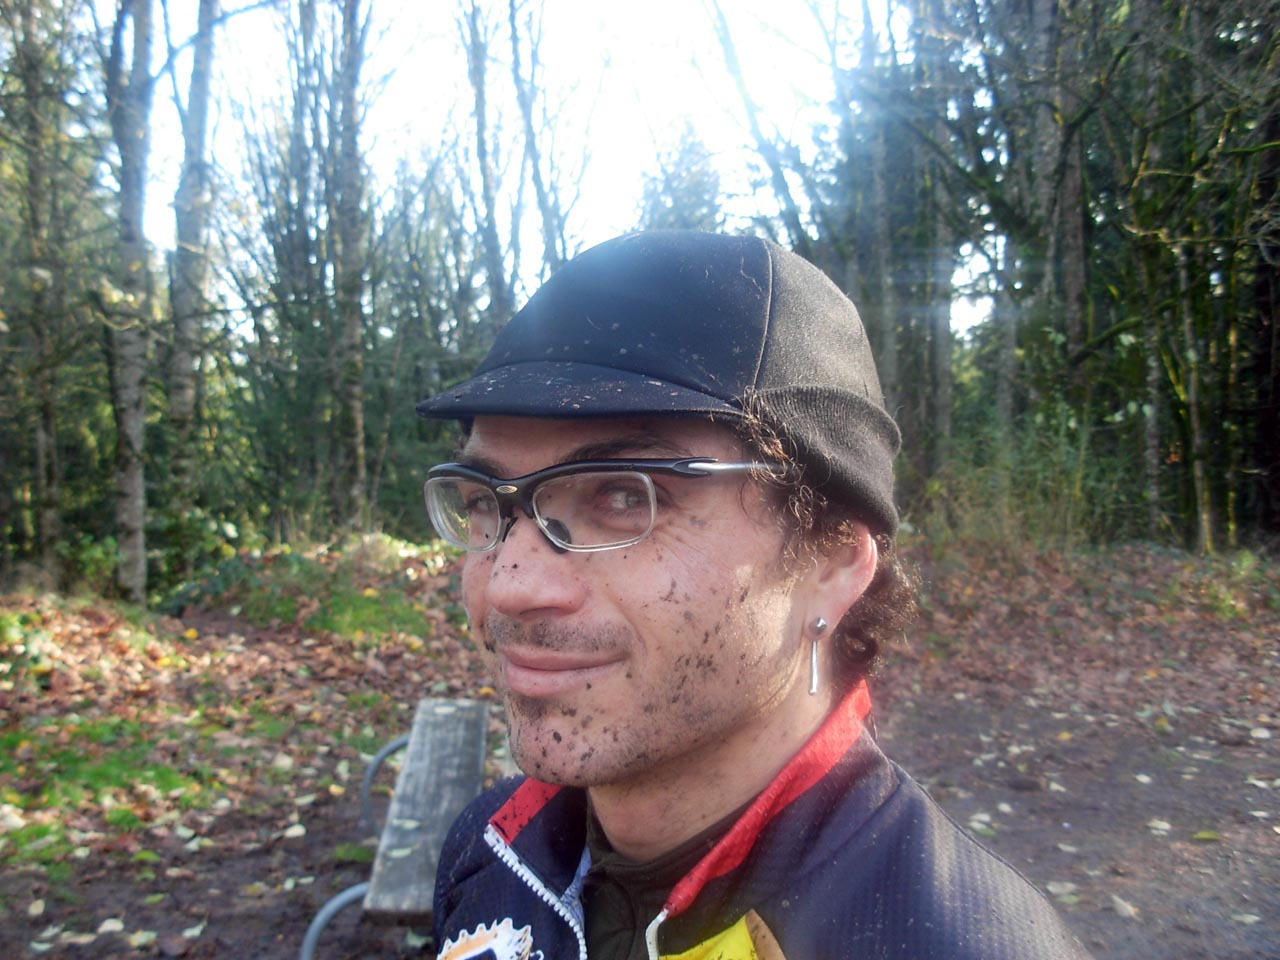 Rapha's Belgian-style winter hat, here with earflaps up ? Josh Liberles